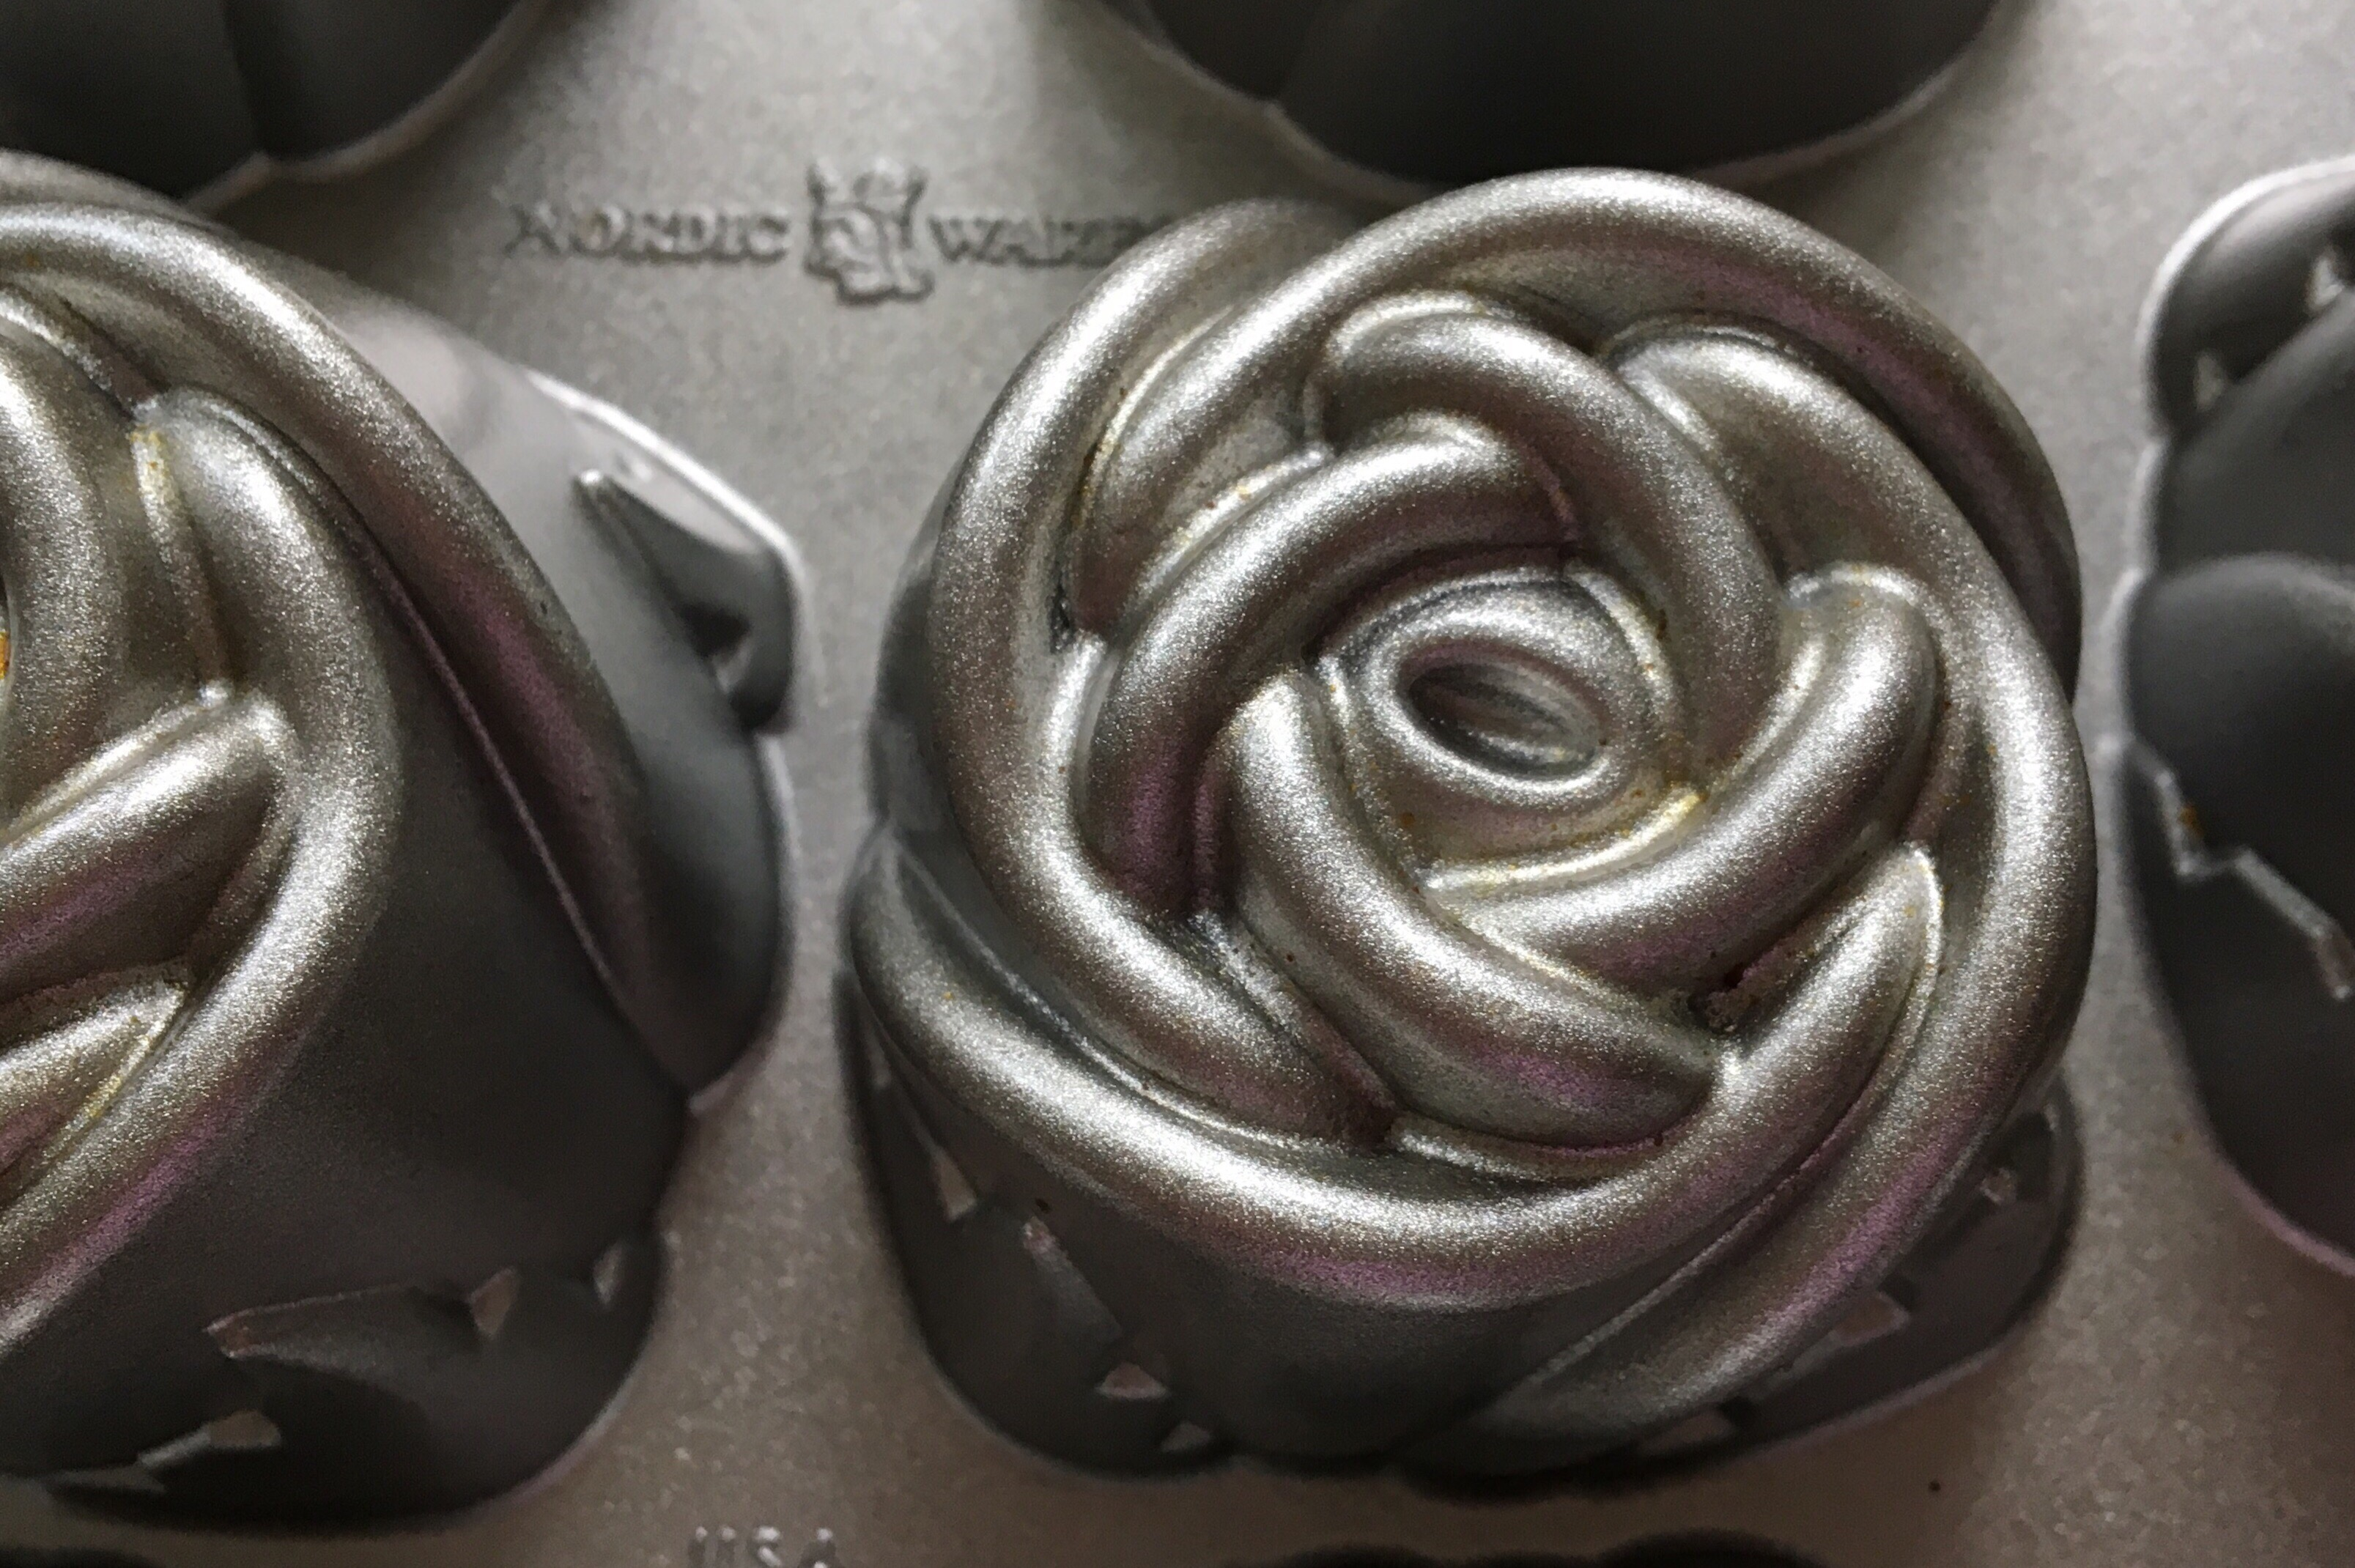 Nordic Ware Sweetheart Roses bageform